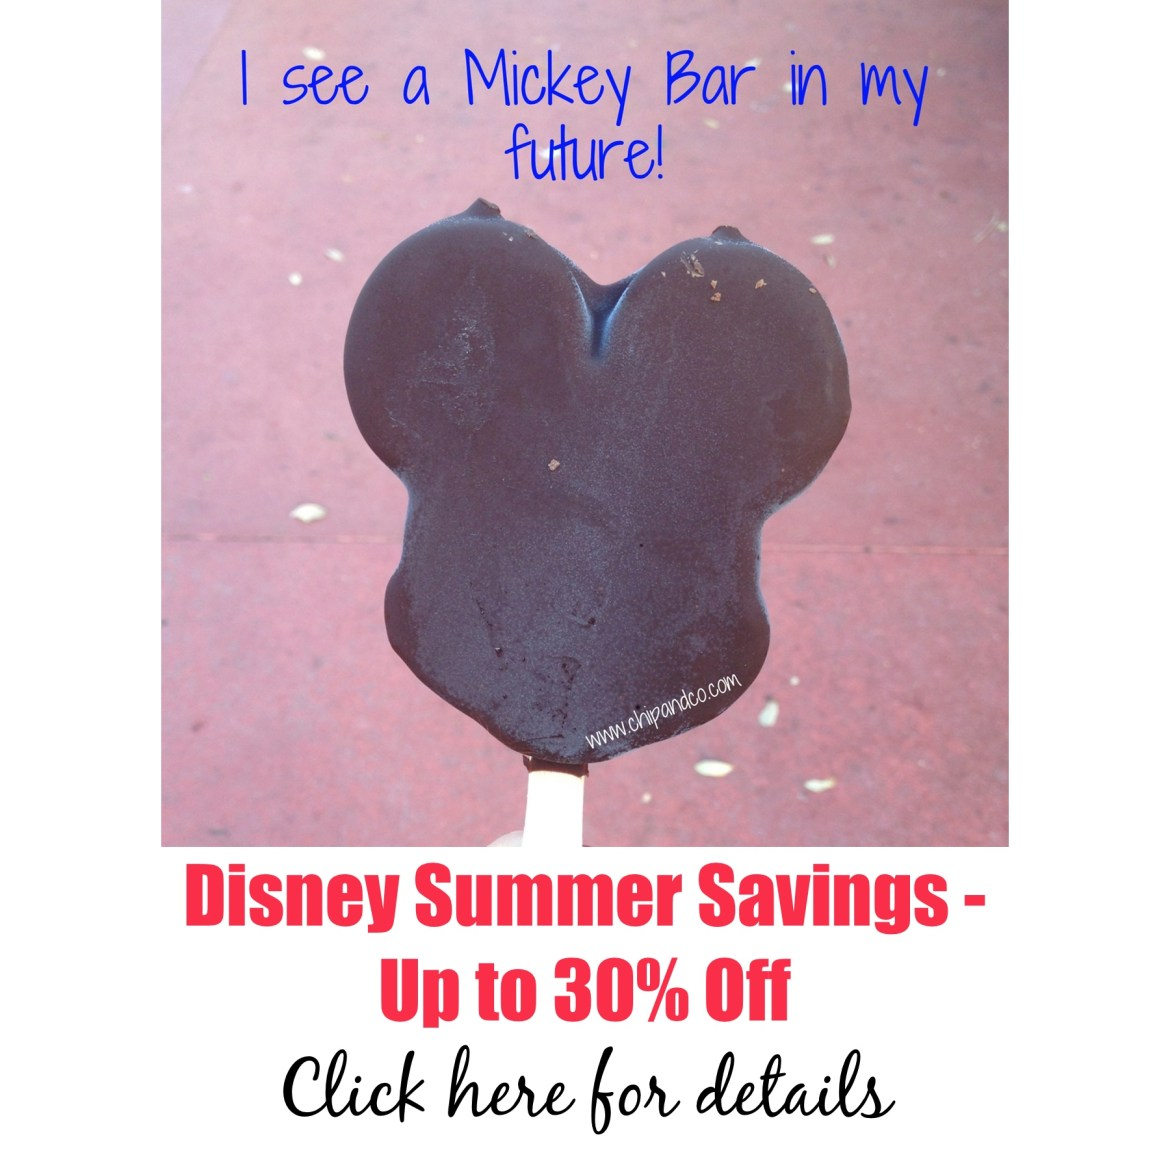 Disney Releases Summer Room Savings of up to 30%!